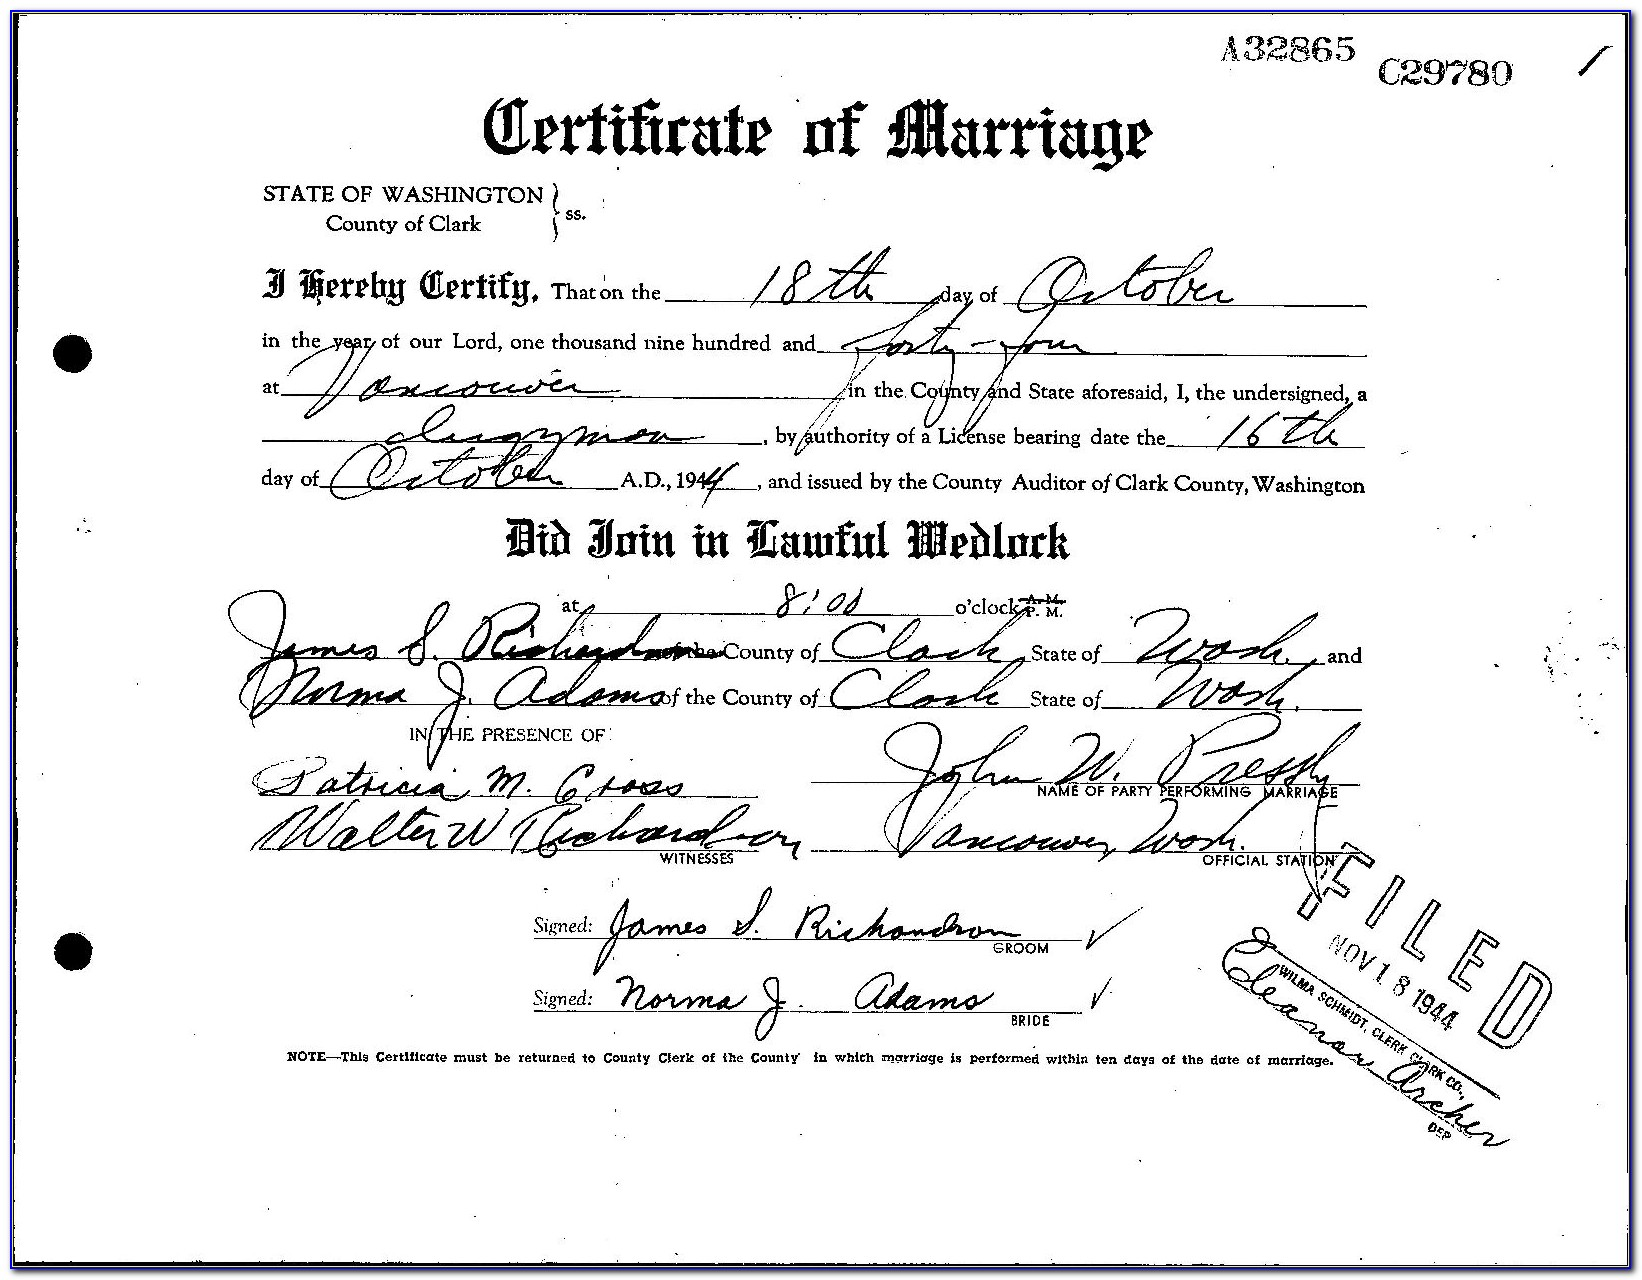 Clark County Vancouver Wa Marriage License